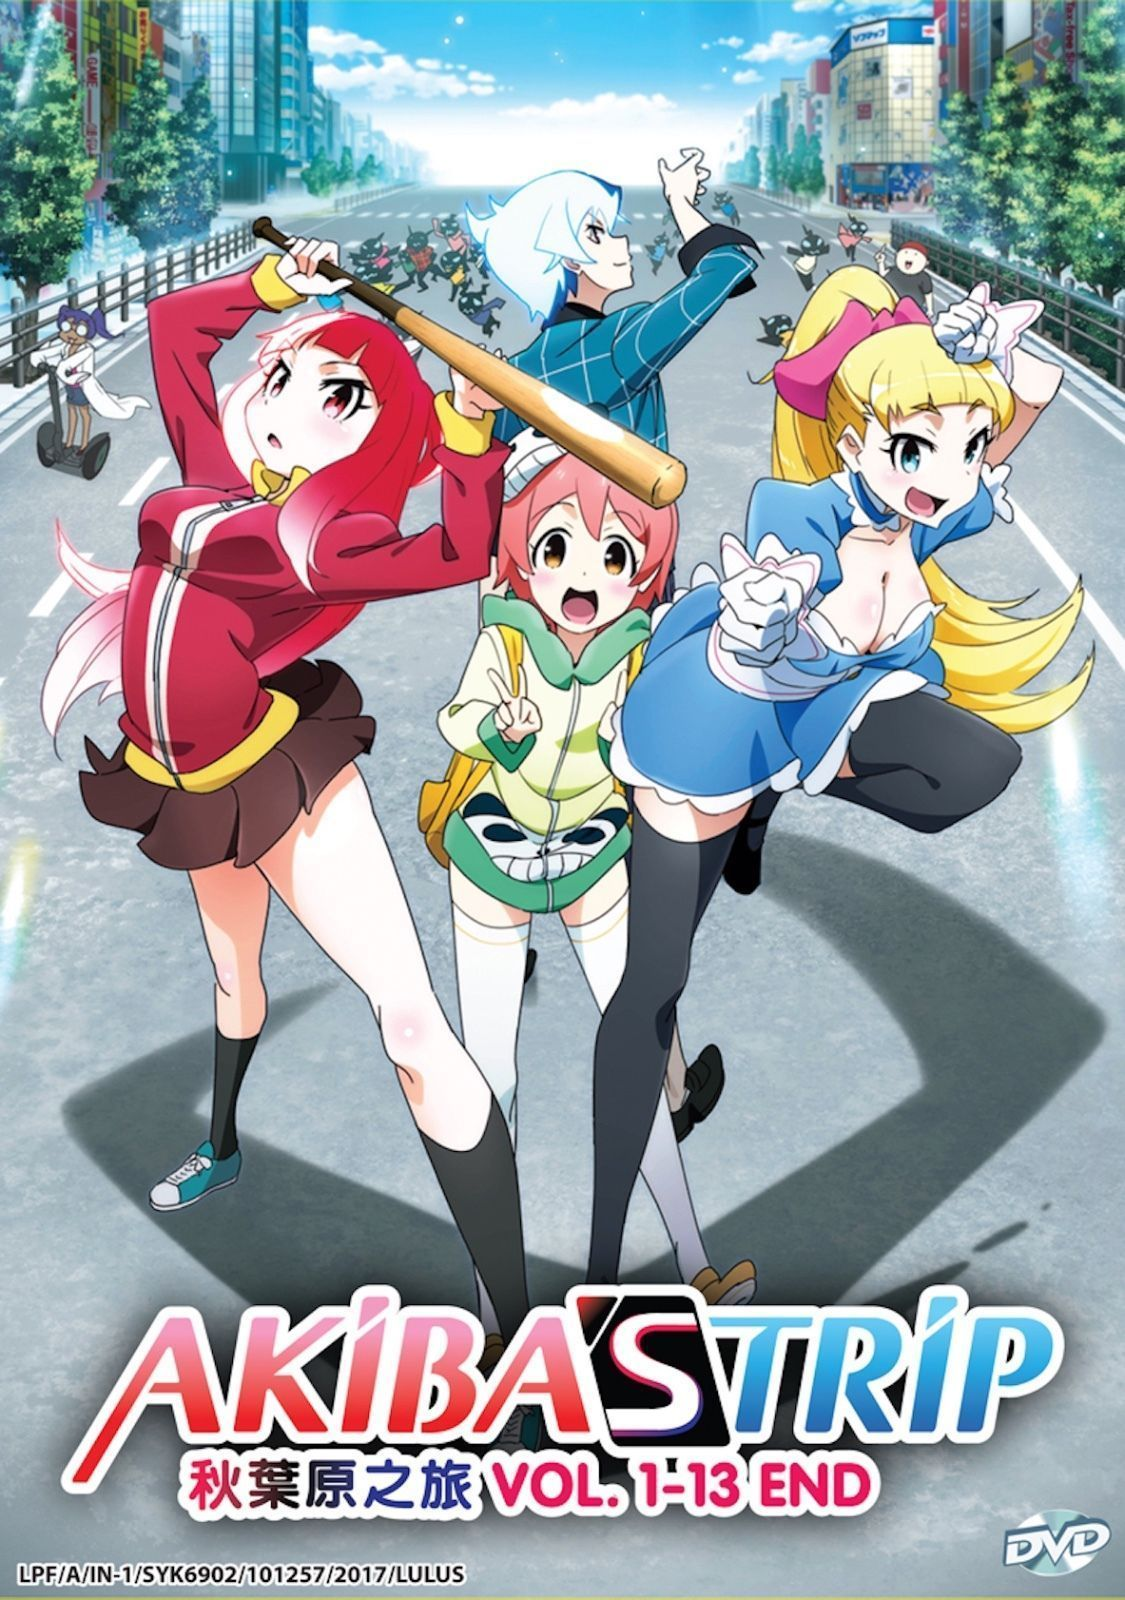 Dvd japan anime akibas trip vol 1 13 end english subtitle free shipping ebay collectibles